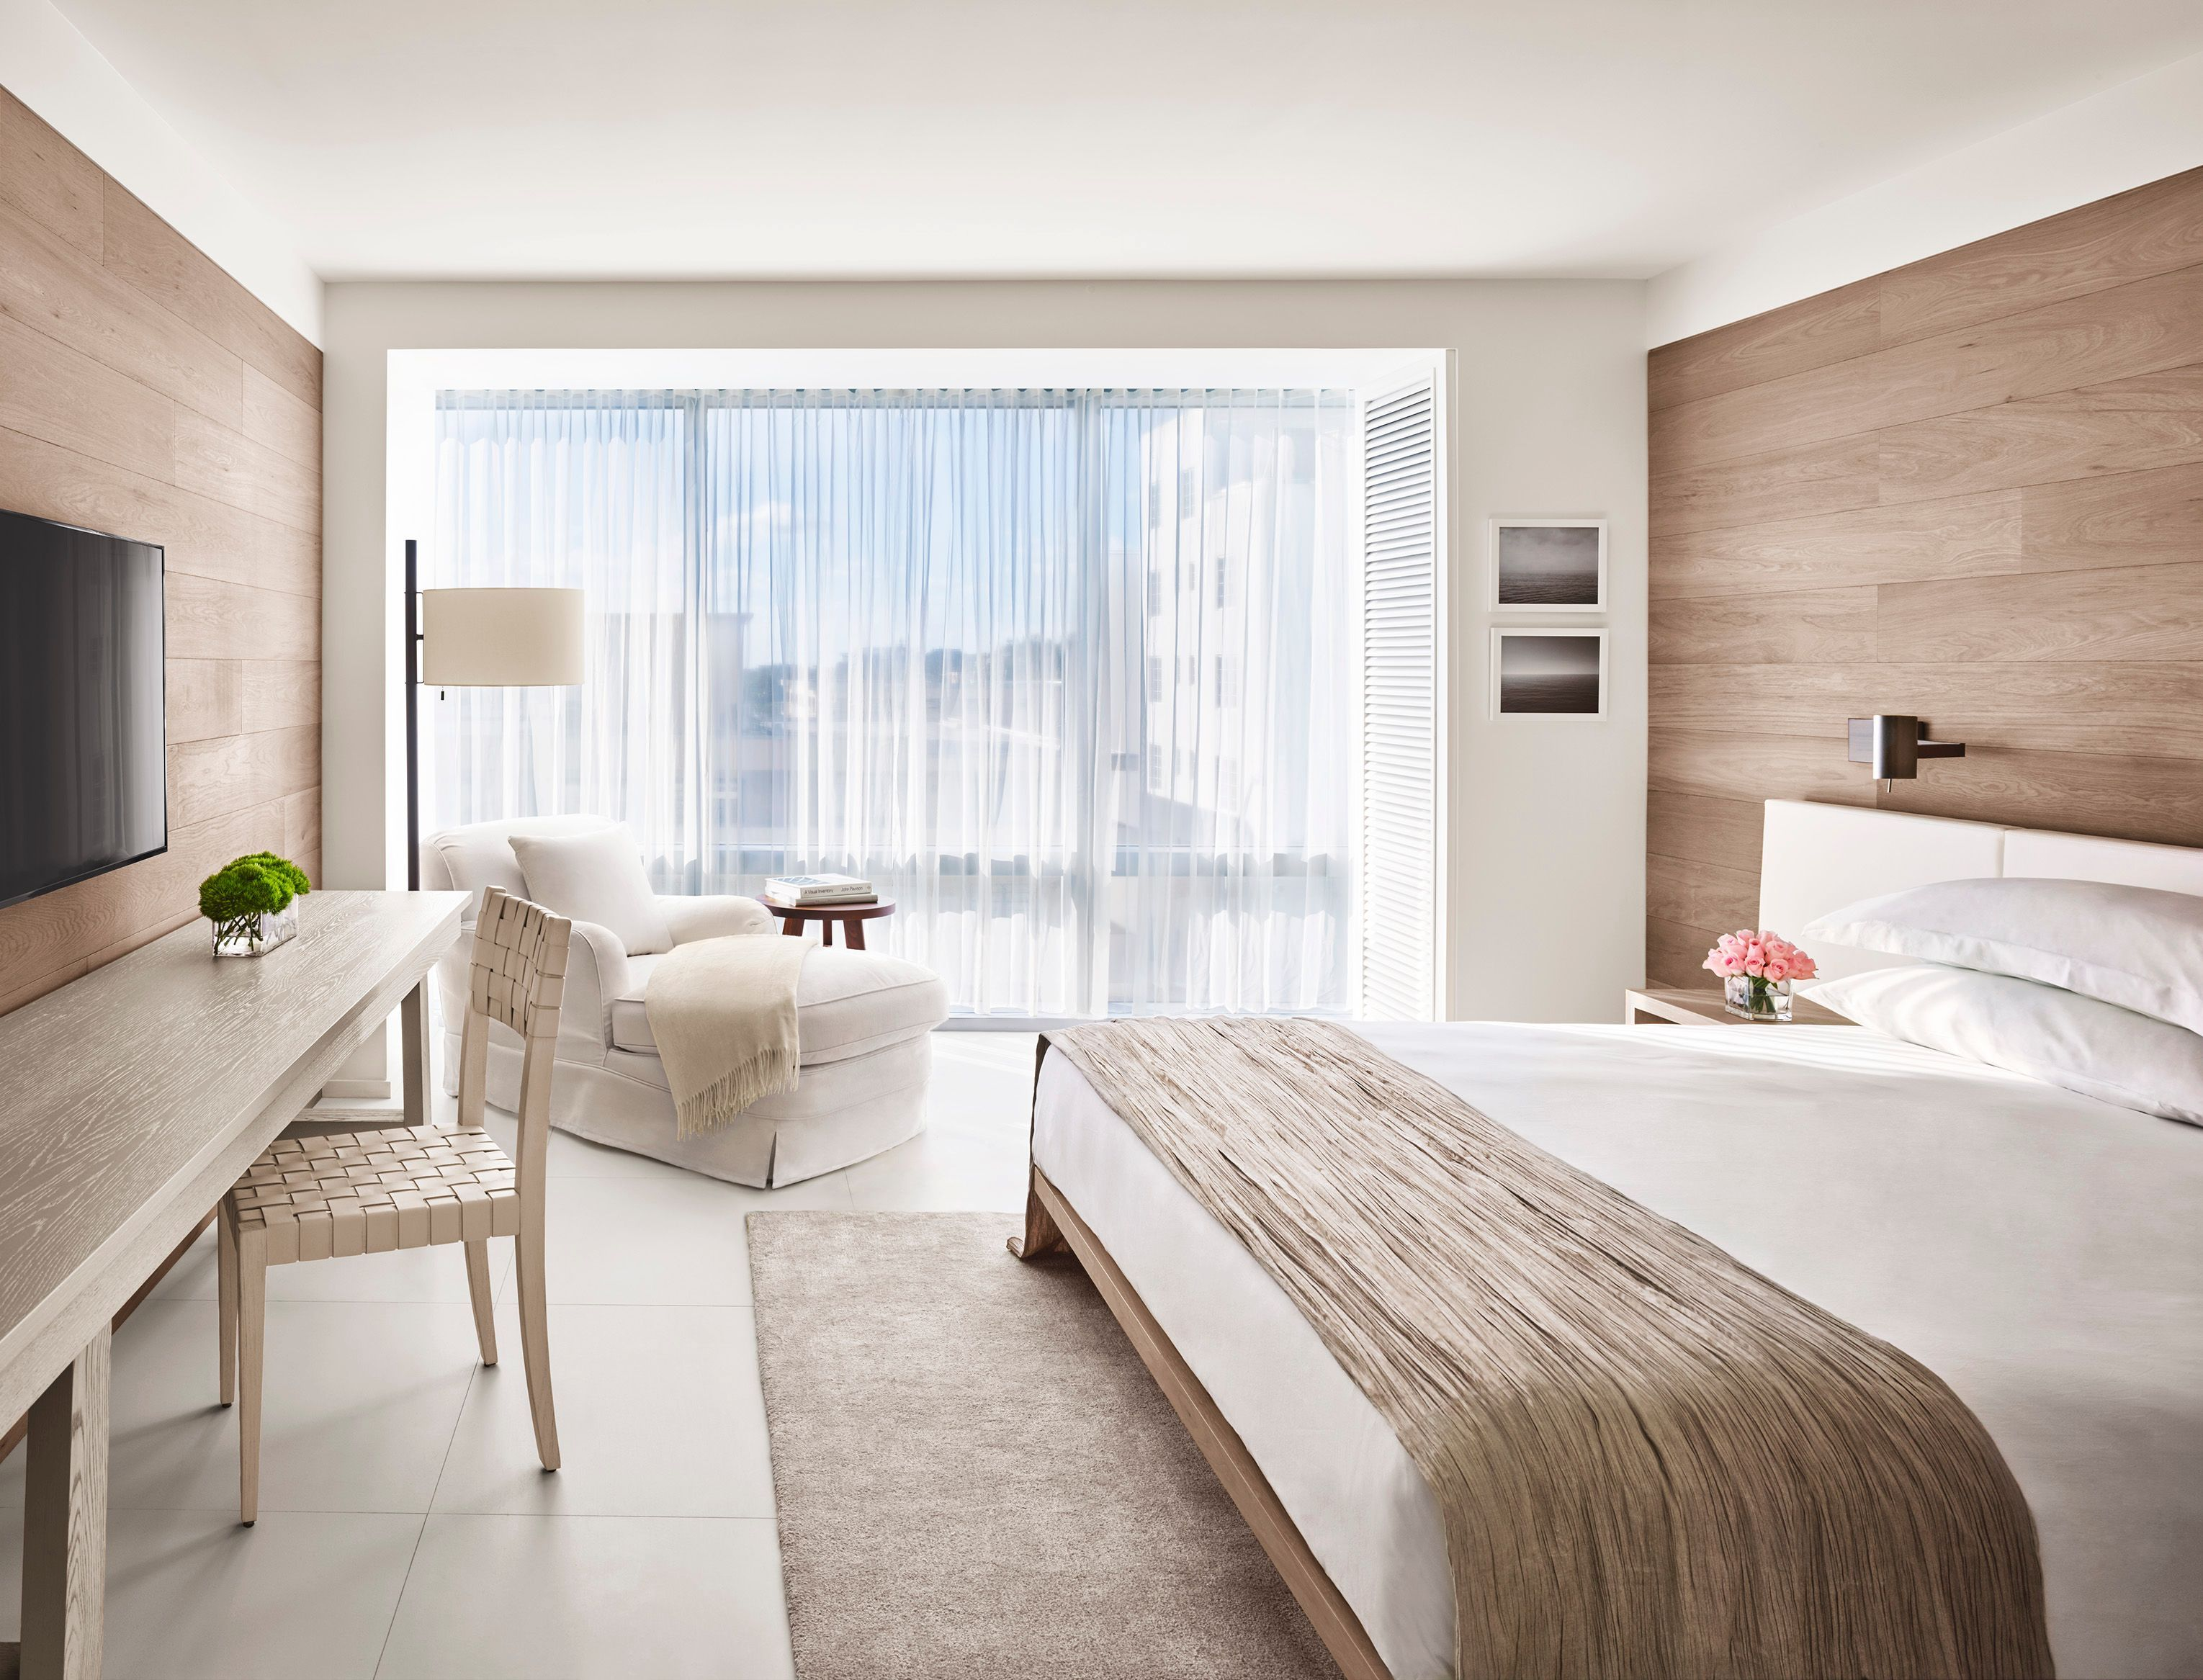 yabu pushelberg the miami beach edition bedroom luxury